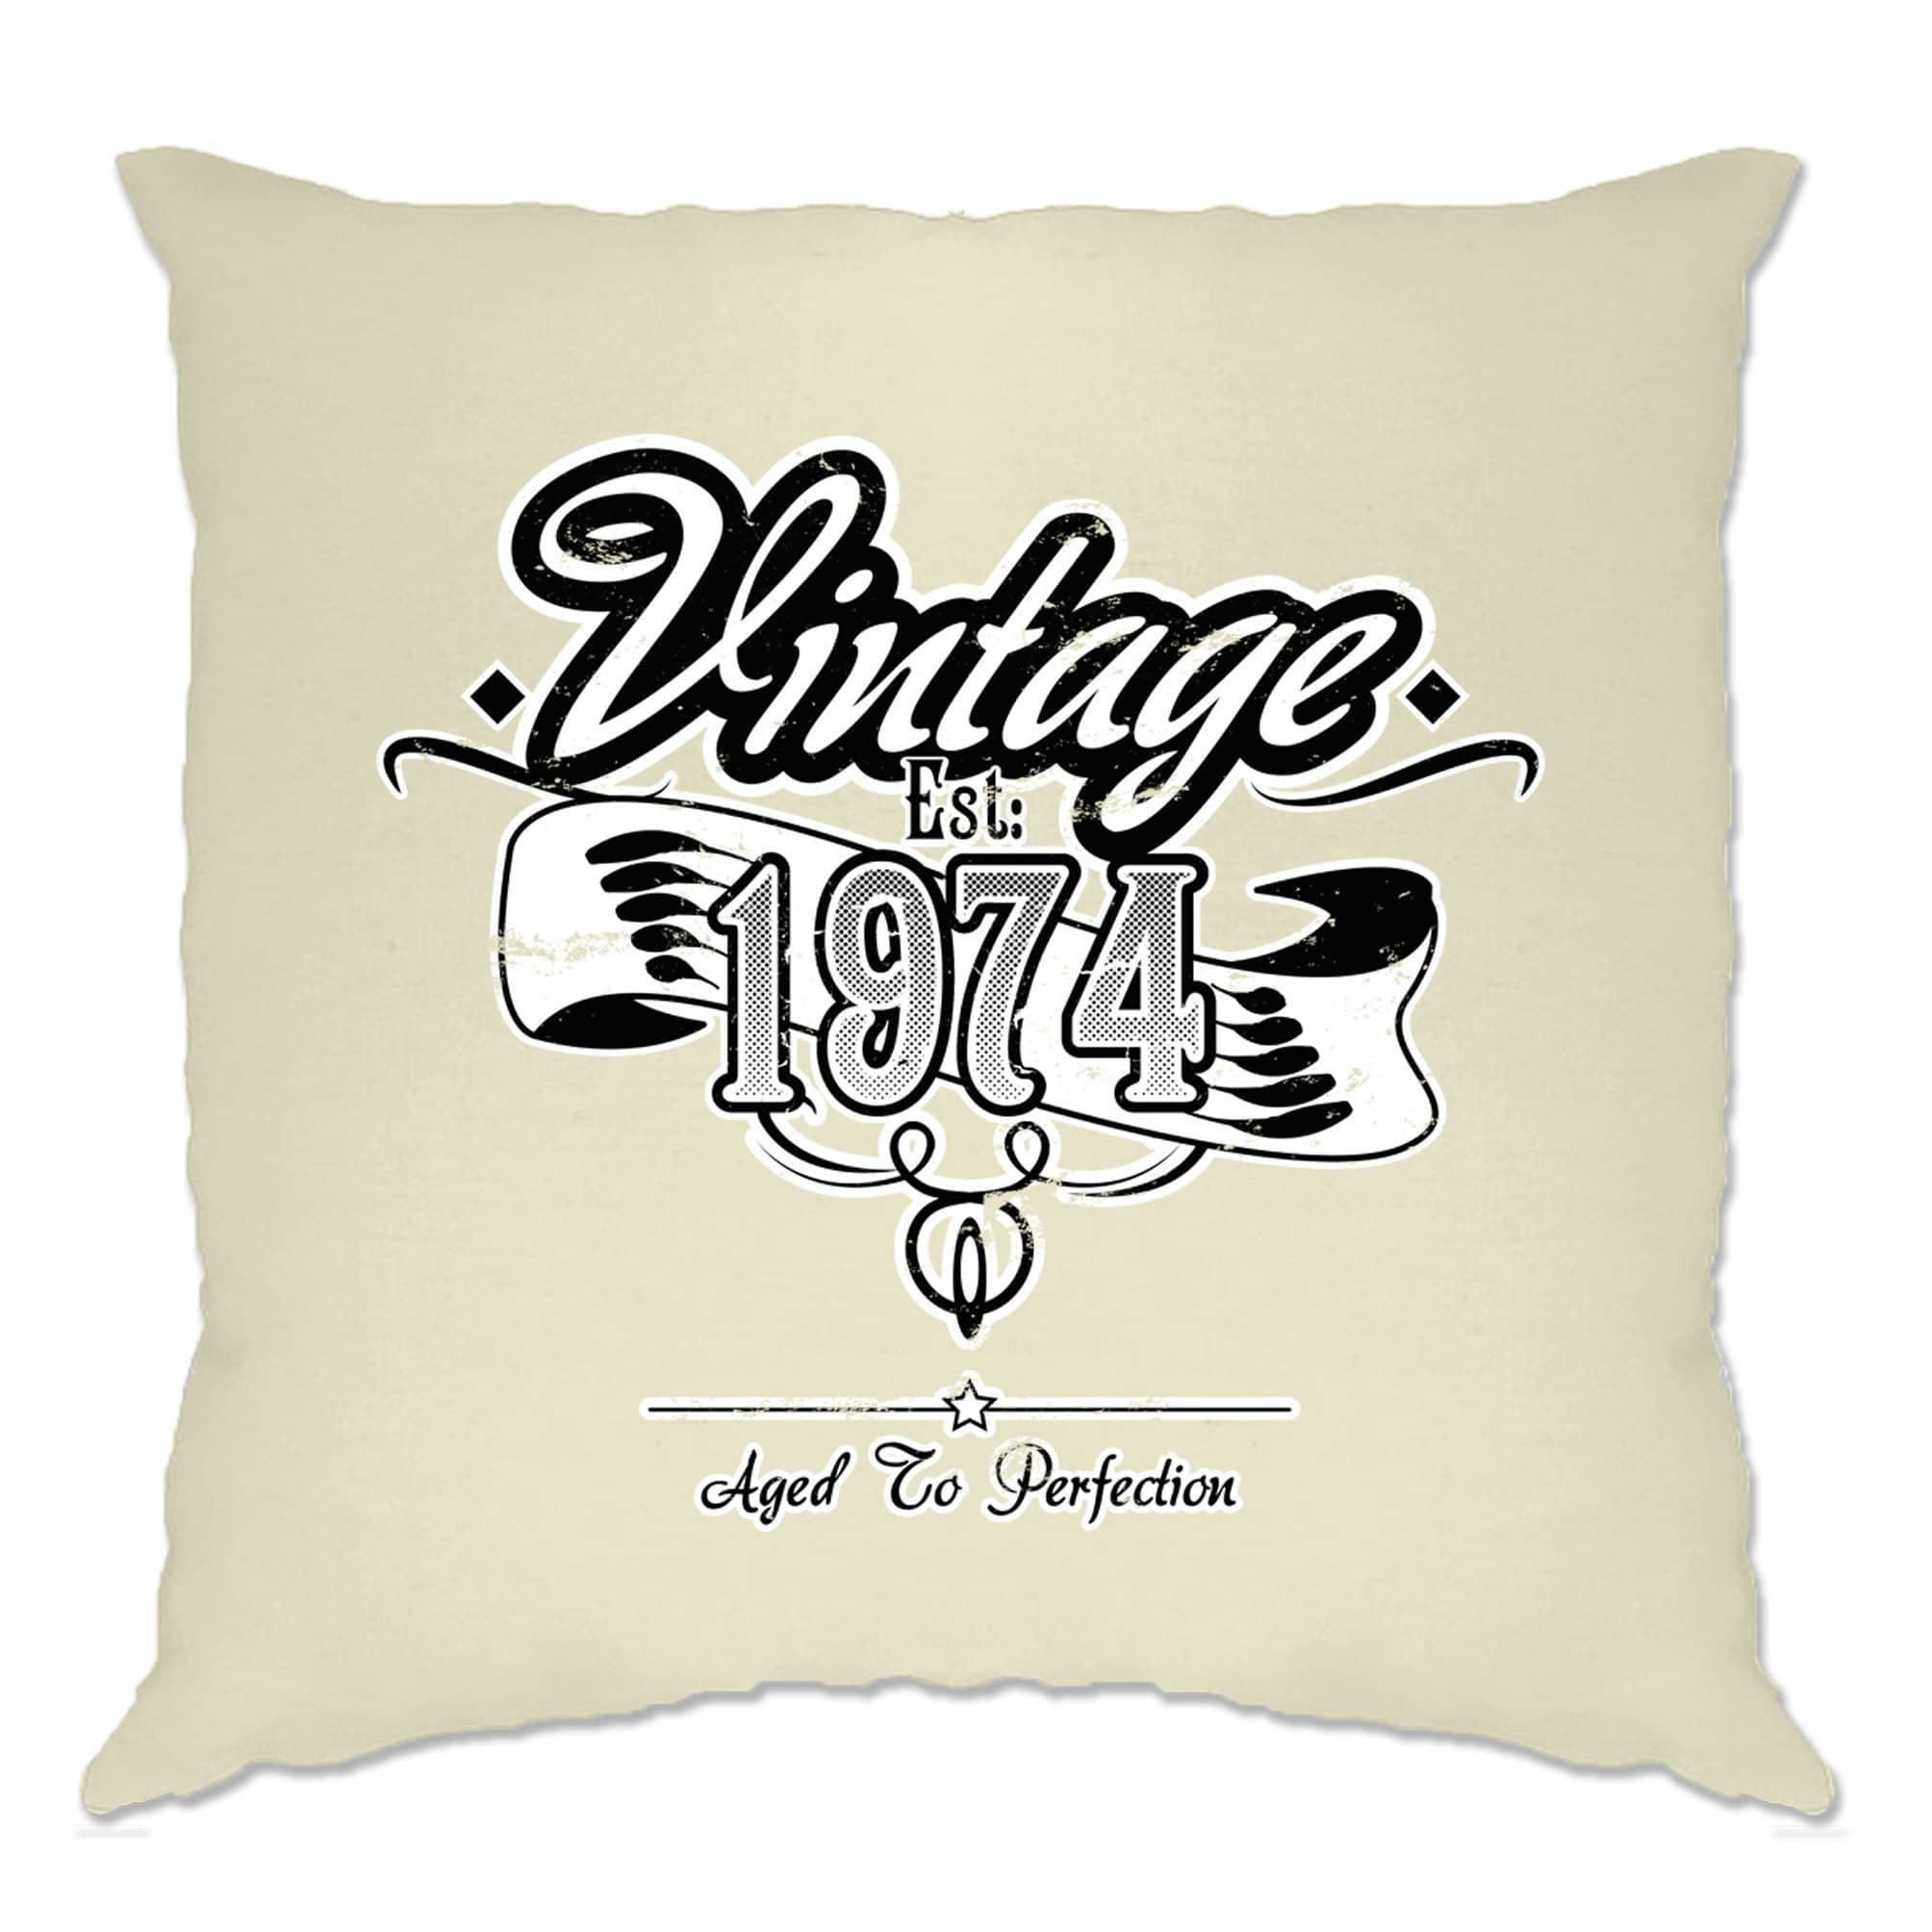 Birthday Cushion Cover Vintage Est 1974 Aged To Perfection